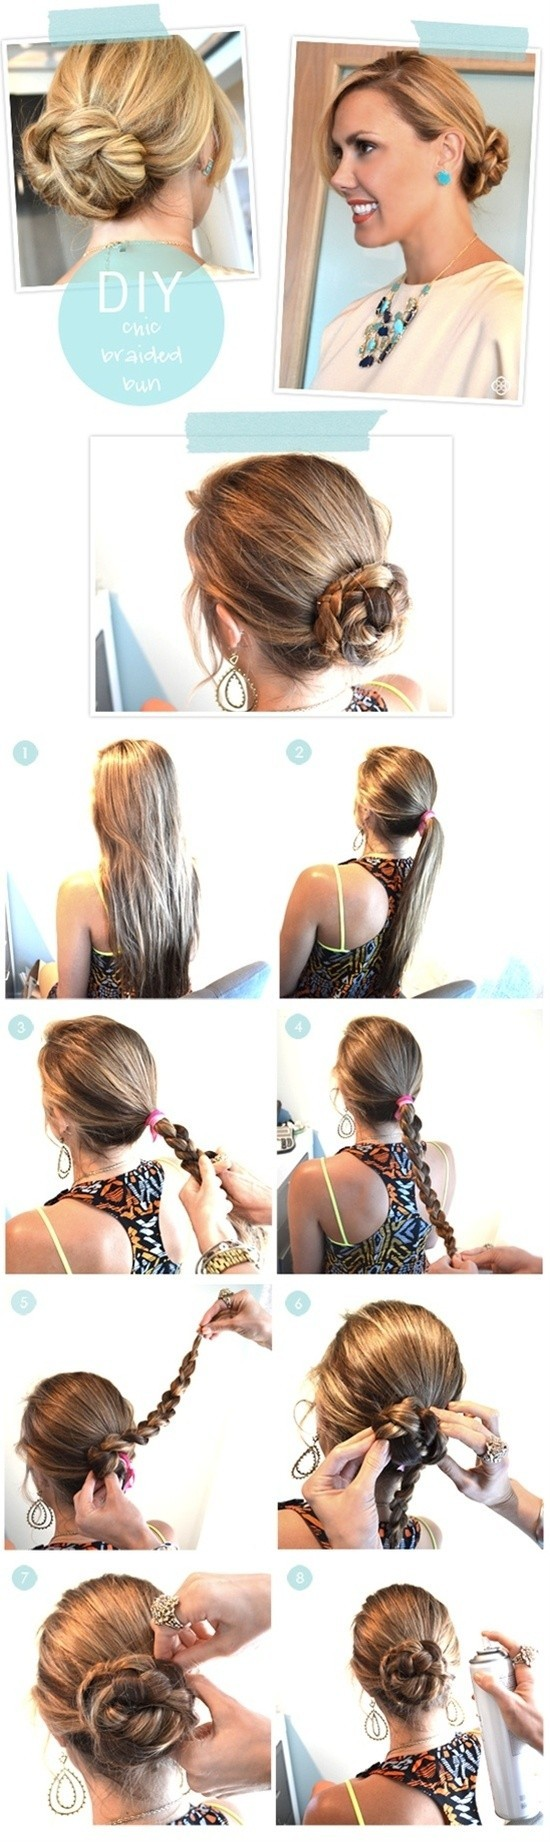 Step by step hairstyles for long hair long hairstyles ideas diy chic braided bun hair tutorial easy updos for long hair solutioingenieria Images